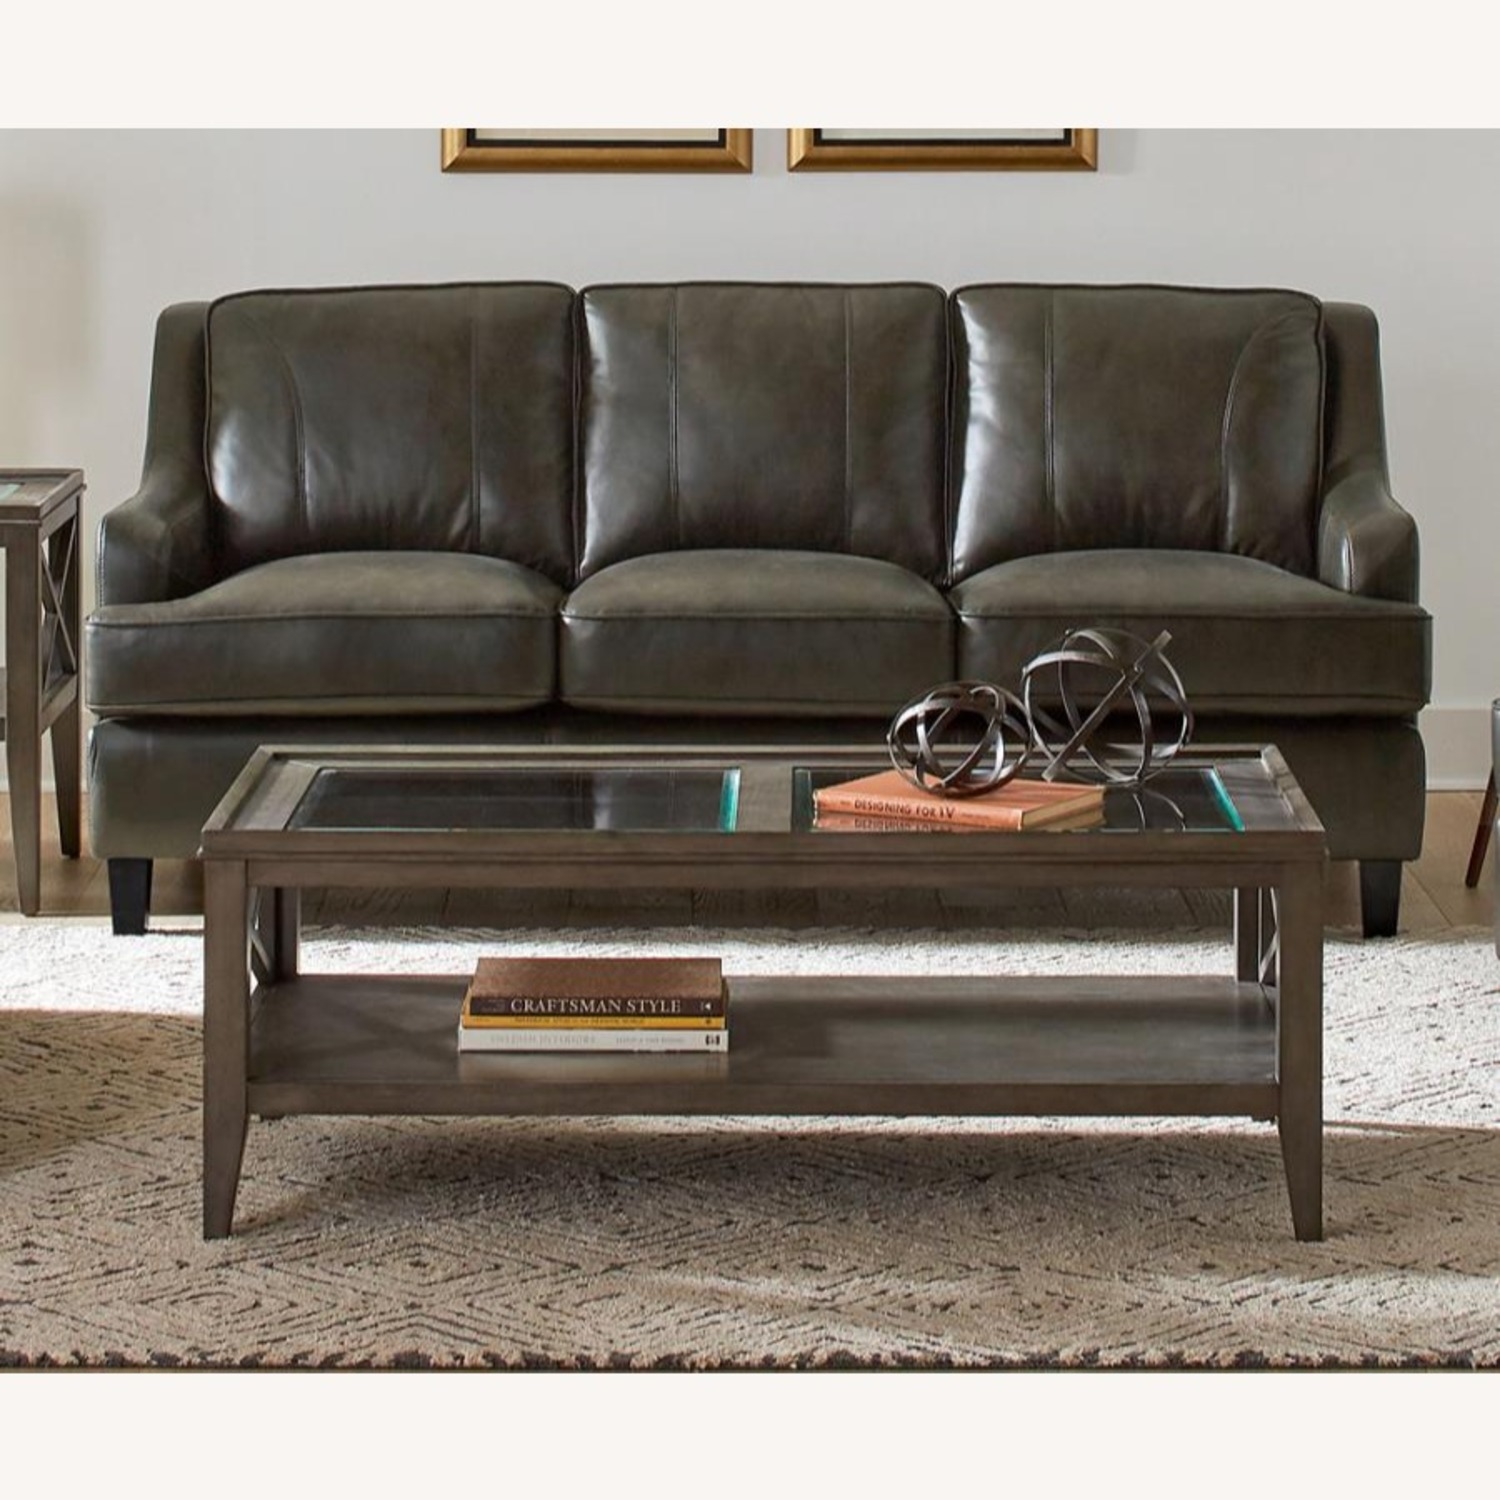 Sofa In Grey Leatherette W/ Stitching Details - image-1